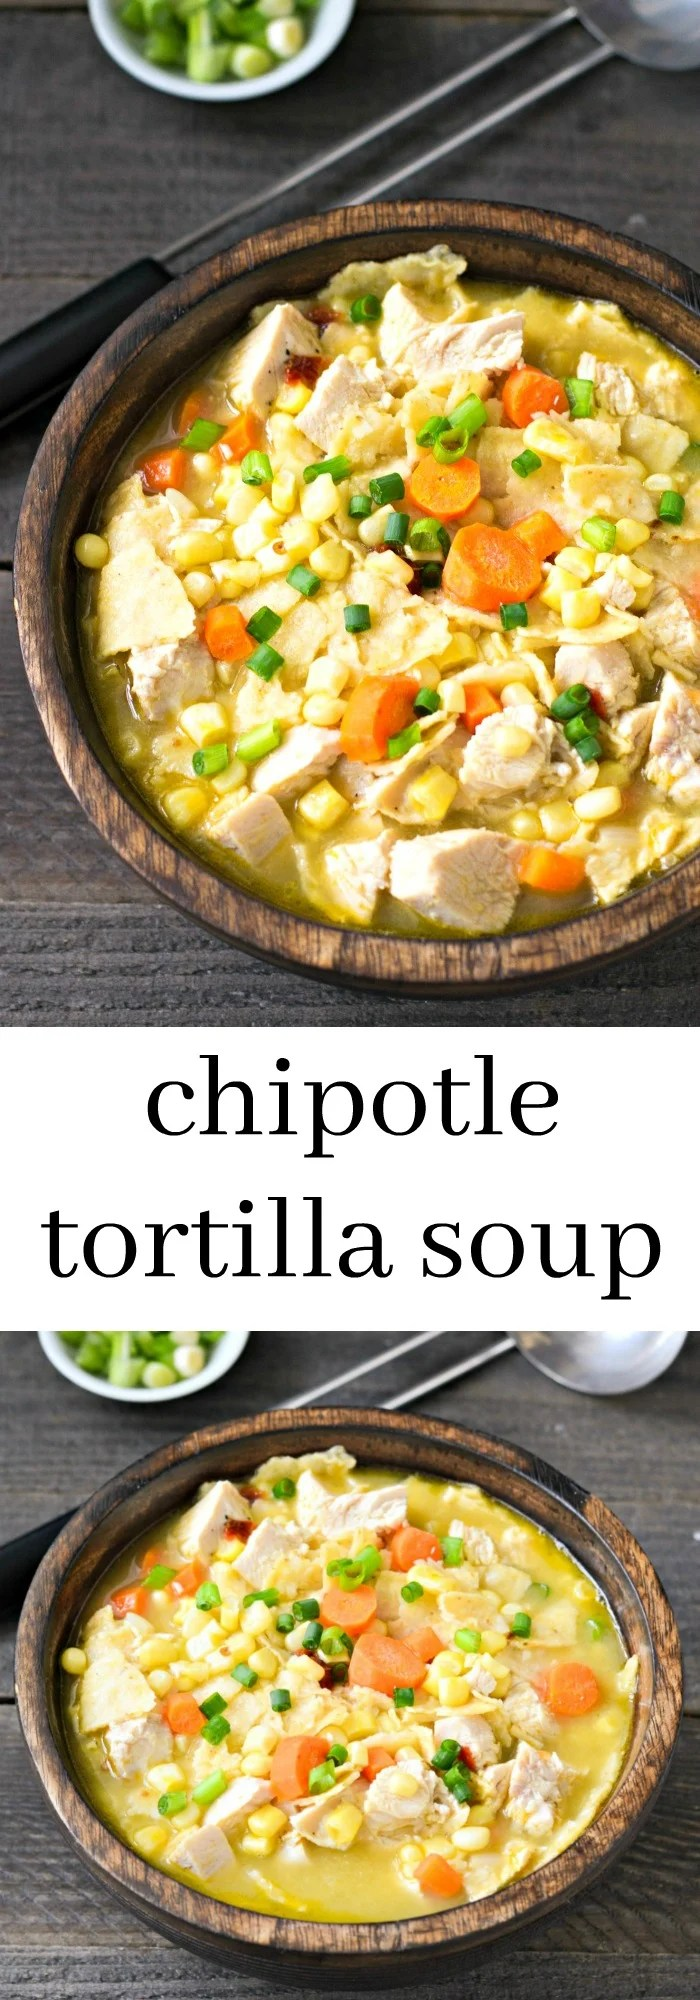 This chipotle tortilla soup is a flavorful recipe that works well with leftover chicken. Bring this healthy soup to work for an easy on-the-go lunch.